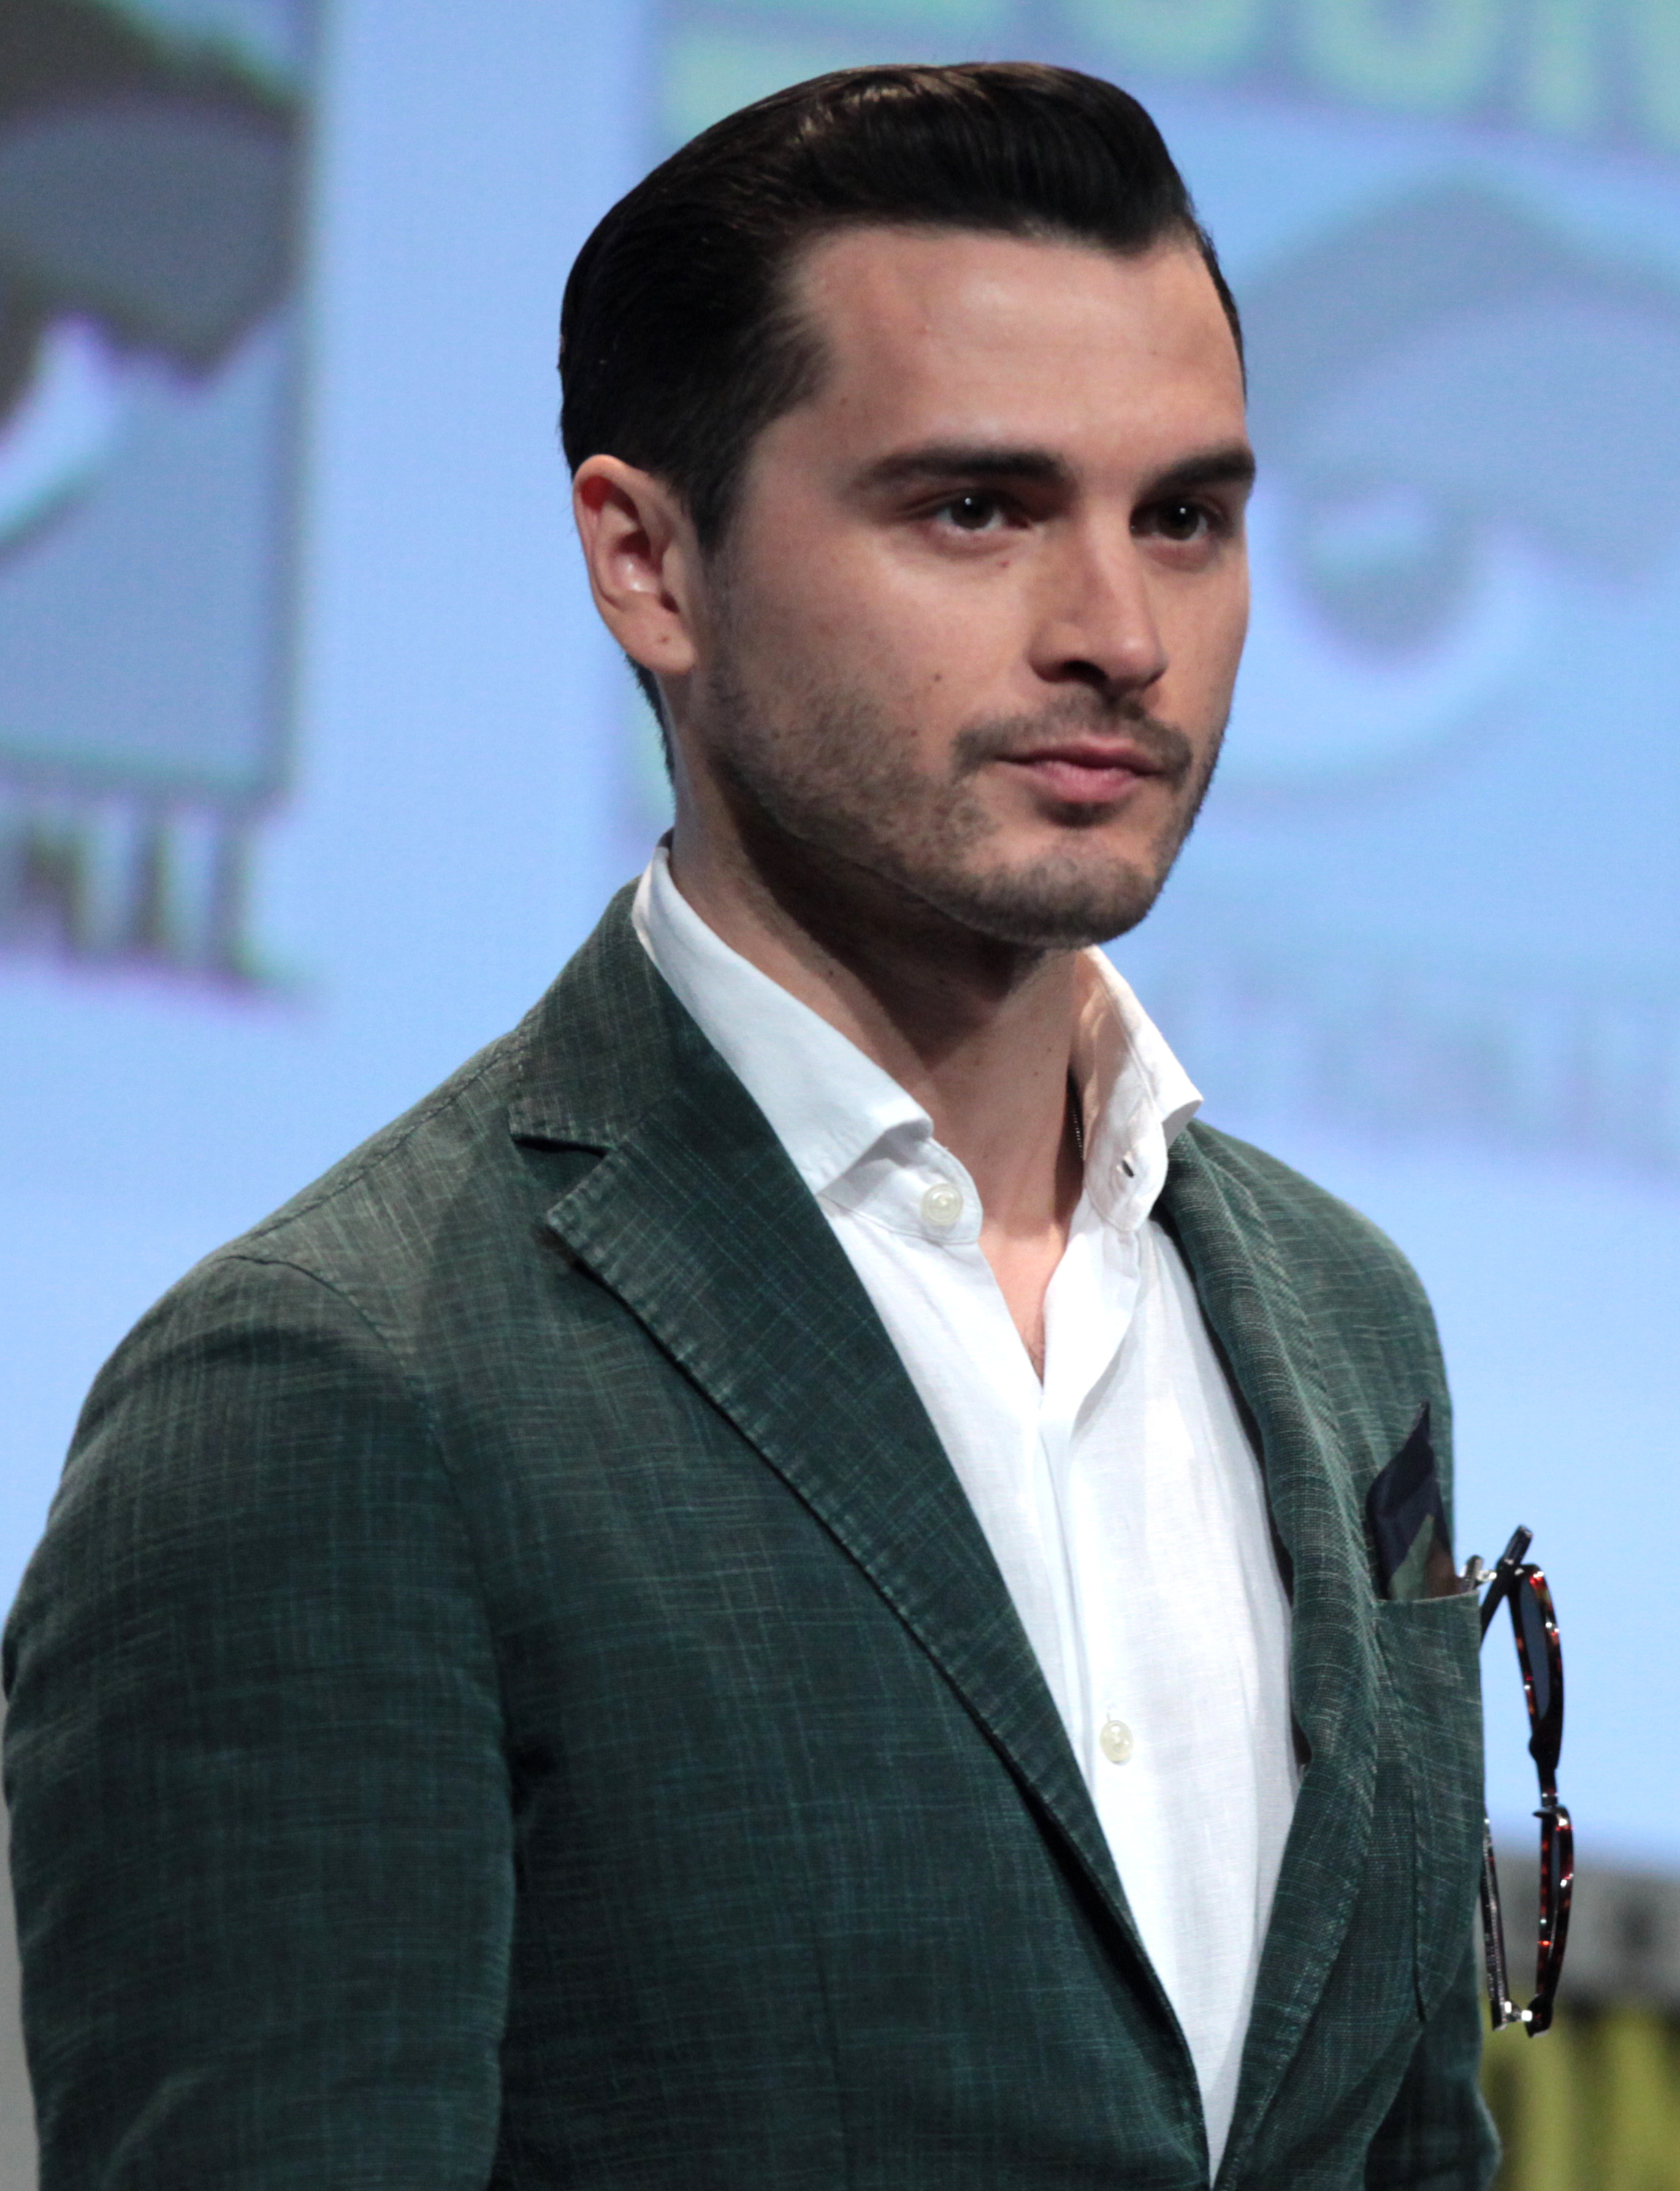 The 35-year old son of father (?) and mother(?) Michael Malarkey in 2018 photo. Michael Malarkey earned a  million dollar salary - leaving the net worth at 1 million in 2018